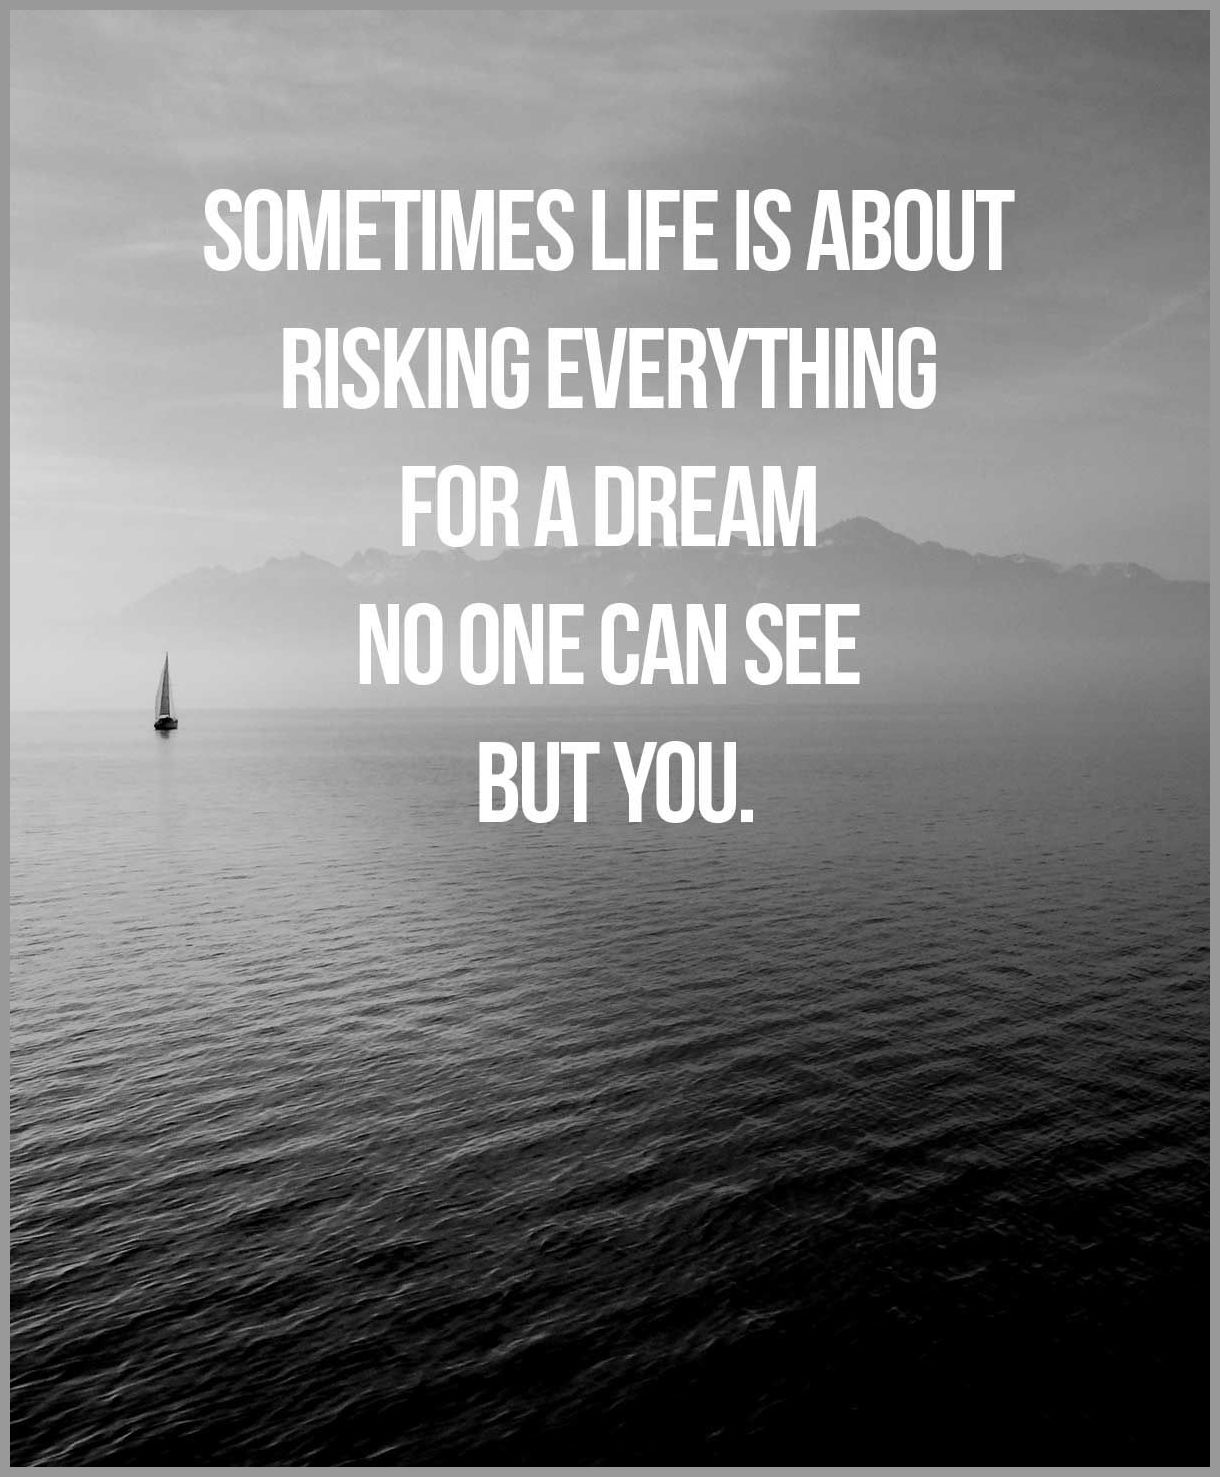 Sometimes life is about risking everything for a dream no one can see but you - Sometimes life is about risking everything for a dream no one can see but you